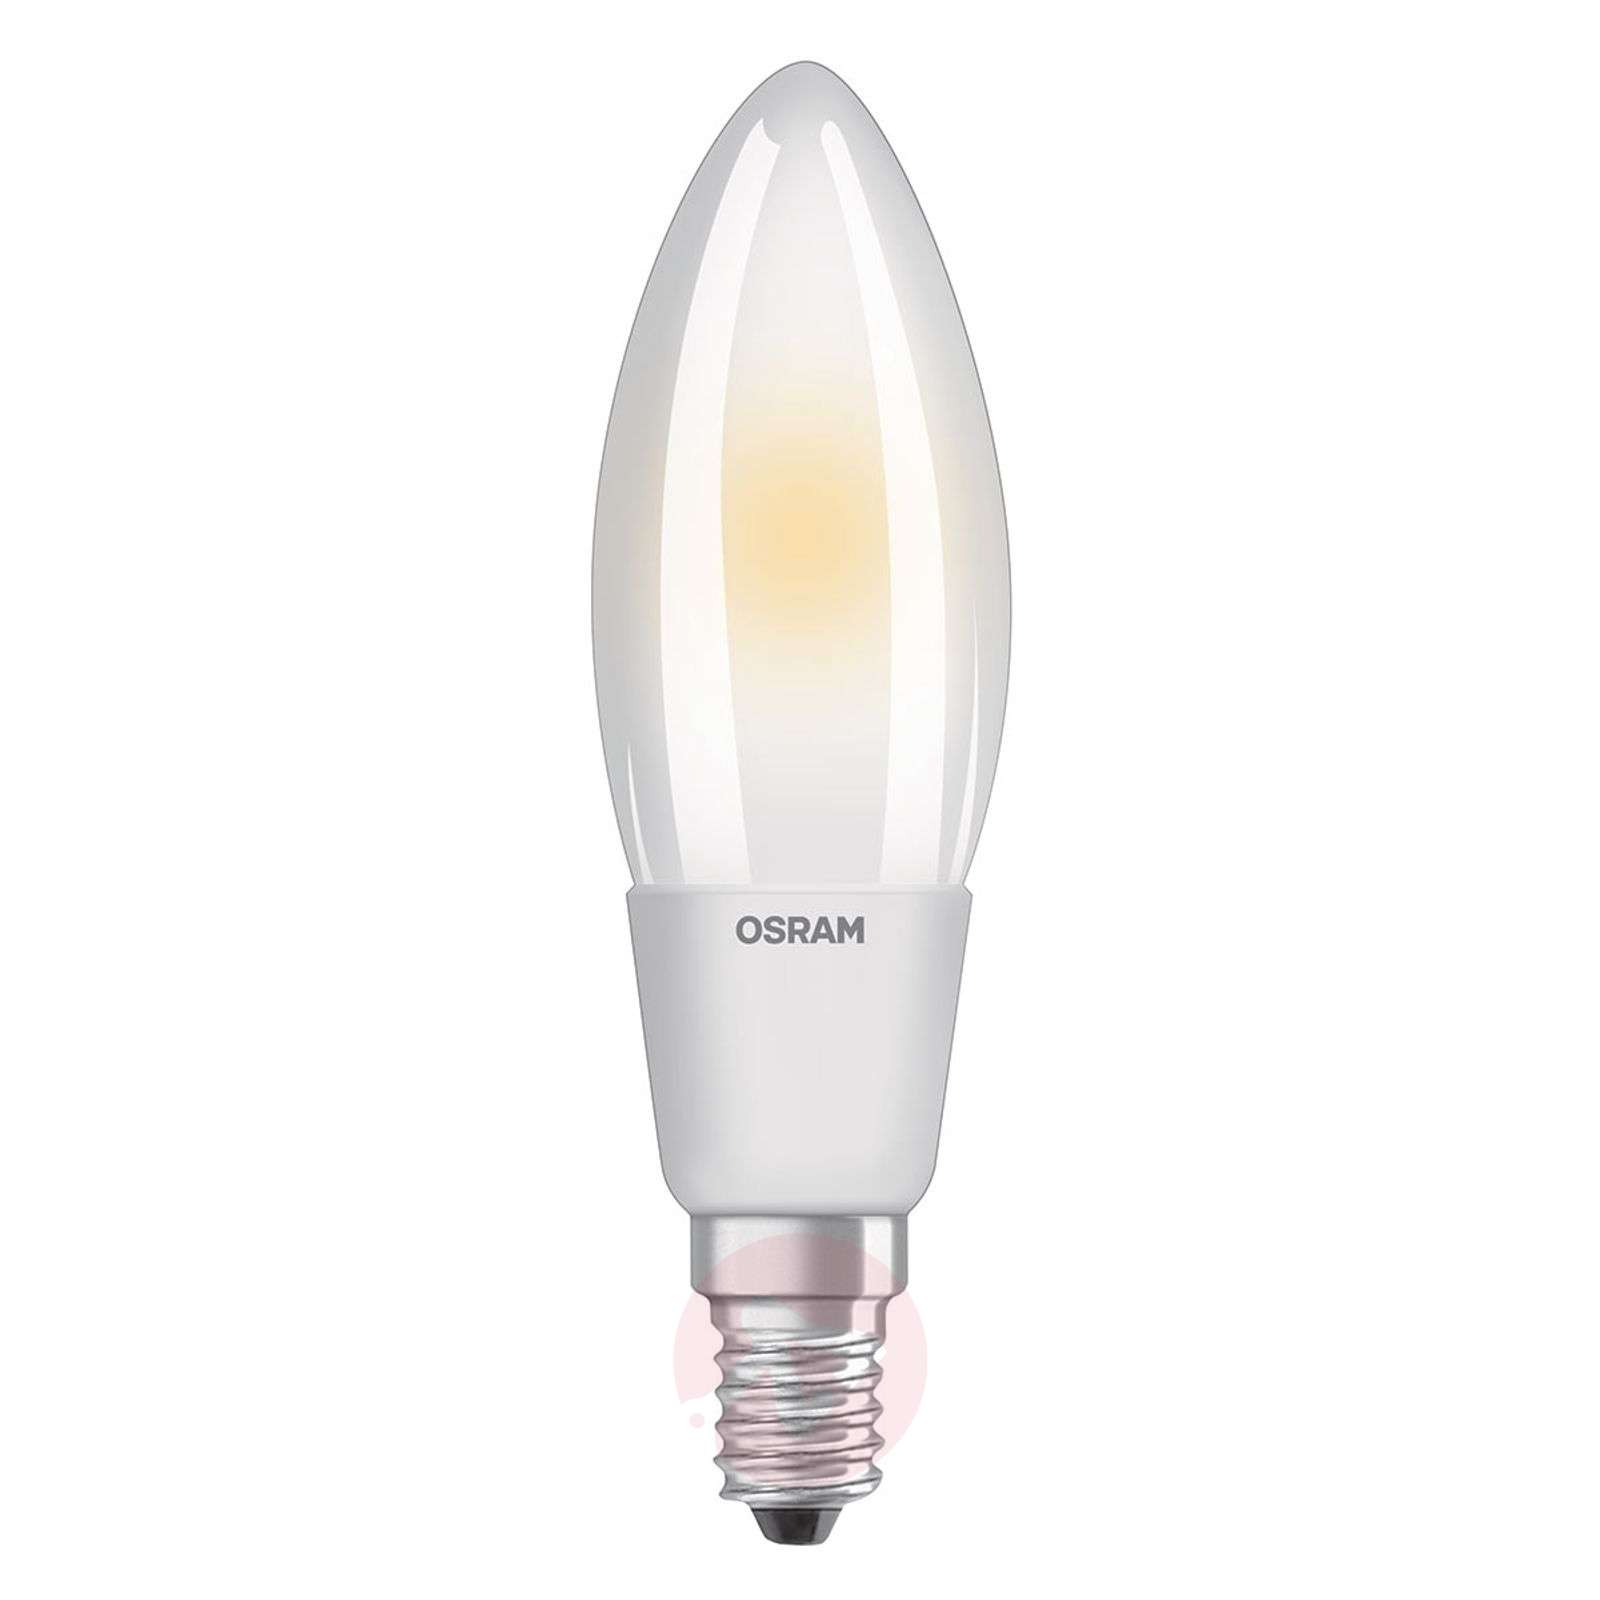 Ampoule flamme LED E14 6 W, blanc chaud, dimmable-7262021-04